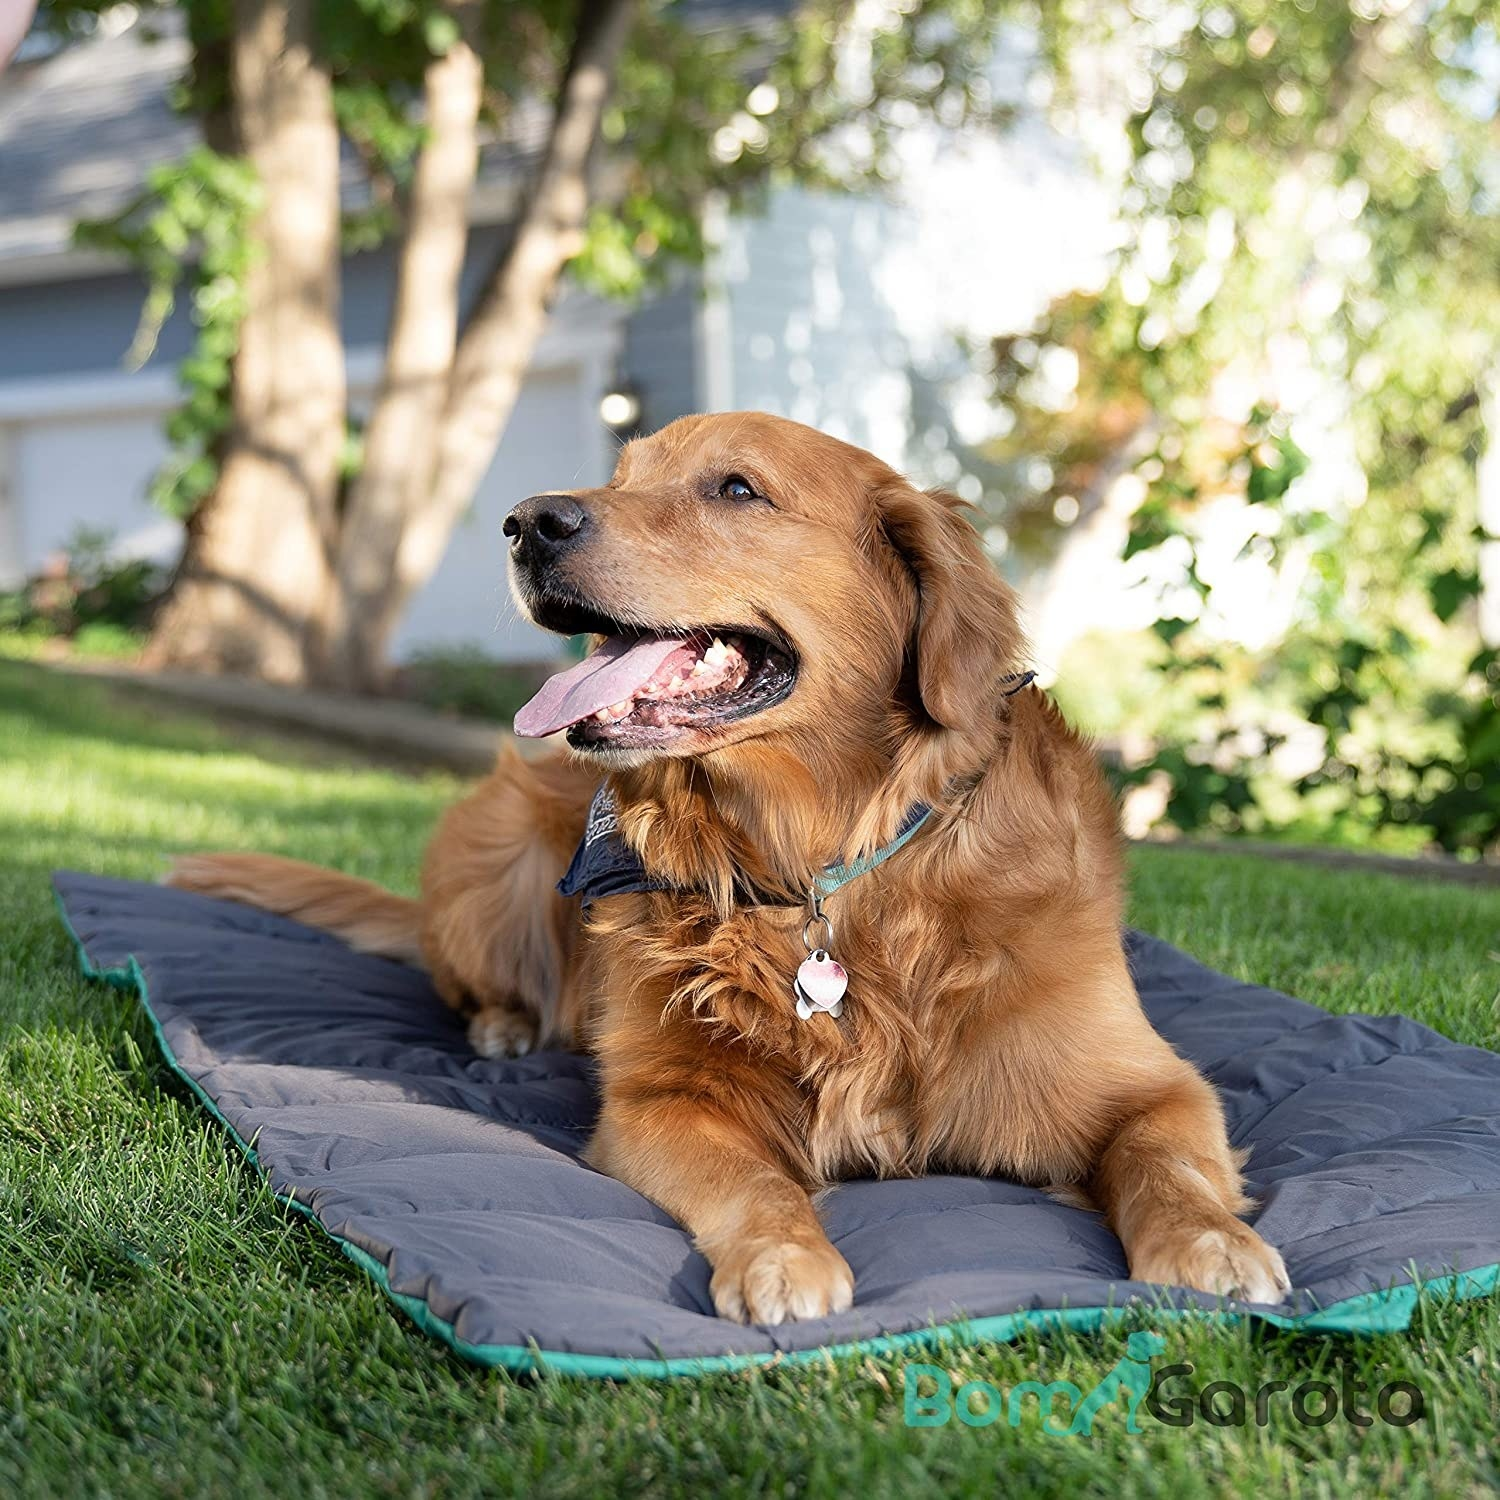 Dog laying on the blanket-like pet liner outside